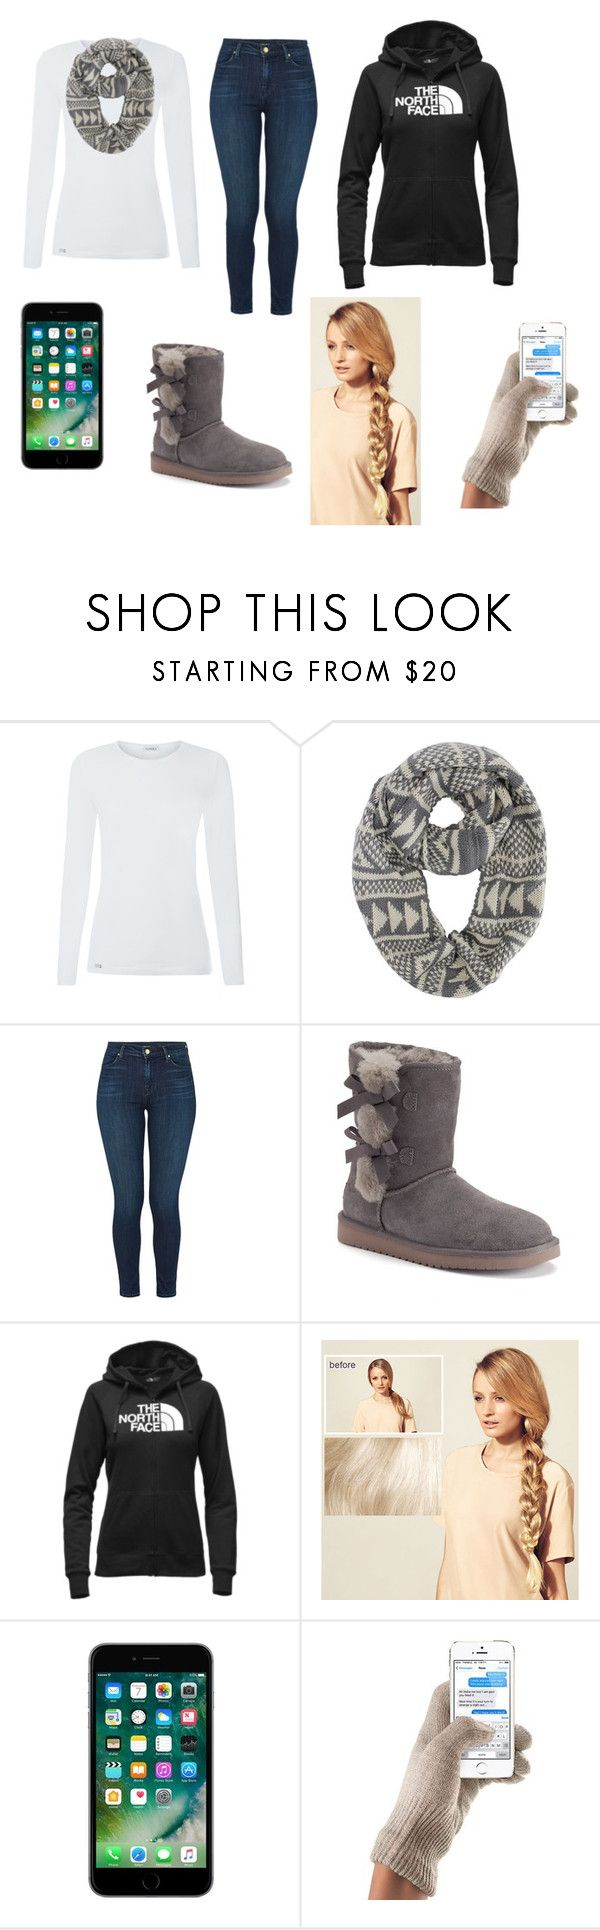 """""""Winter outfit"""" by sfeeley ❤ liked on Polyvore featuring J Brand, Koolaburra, The North Face and Hershesons"""